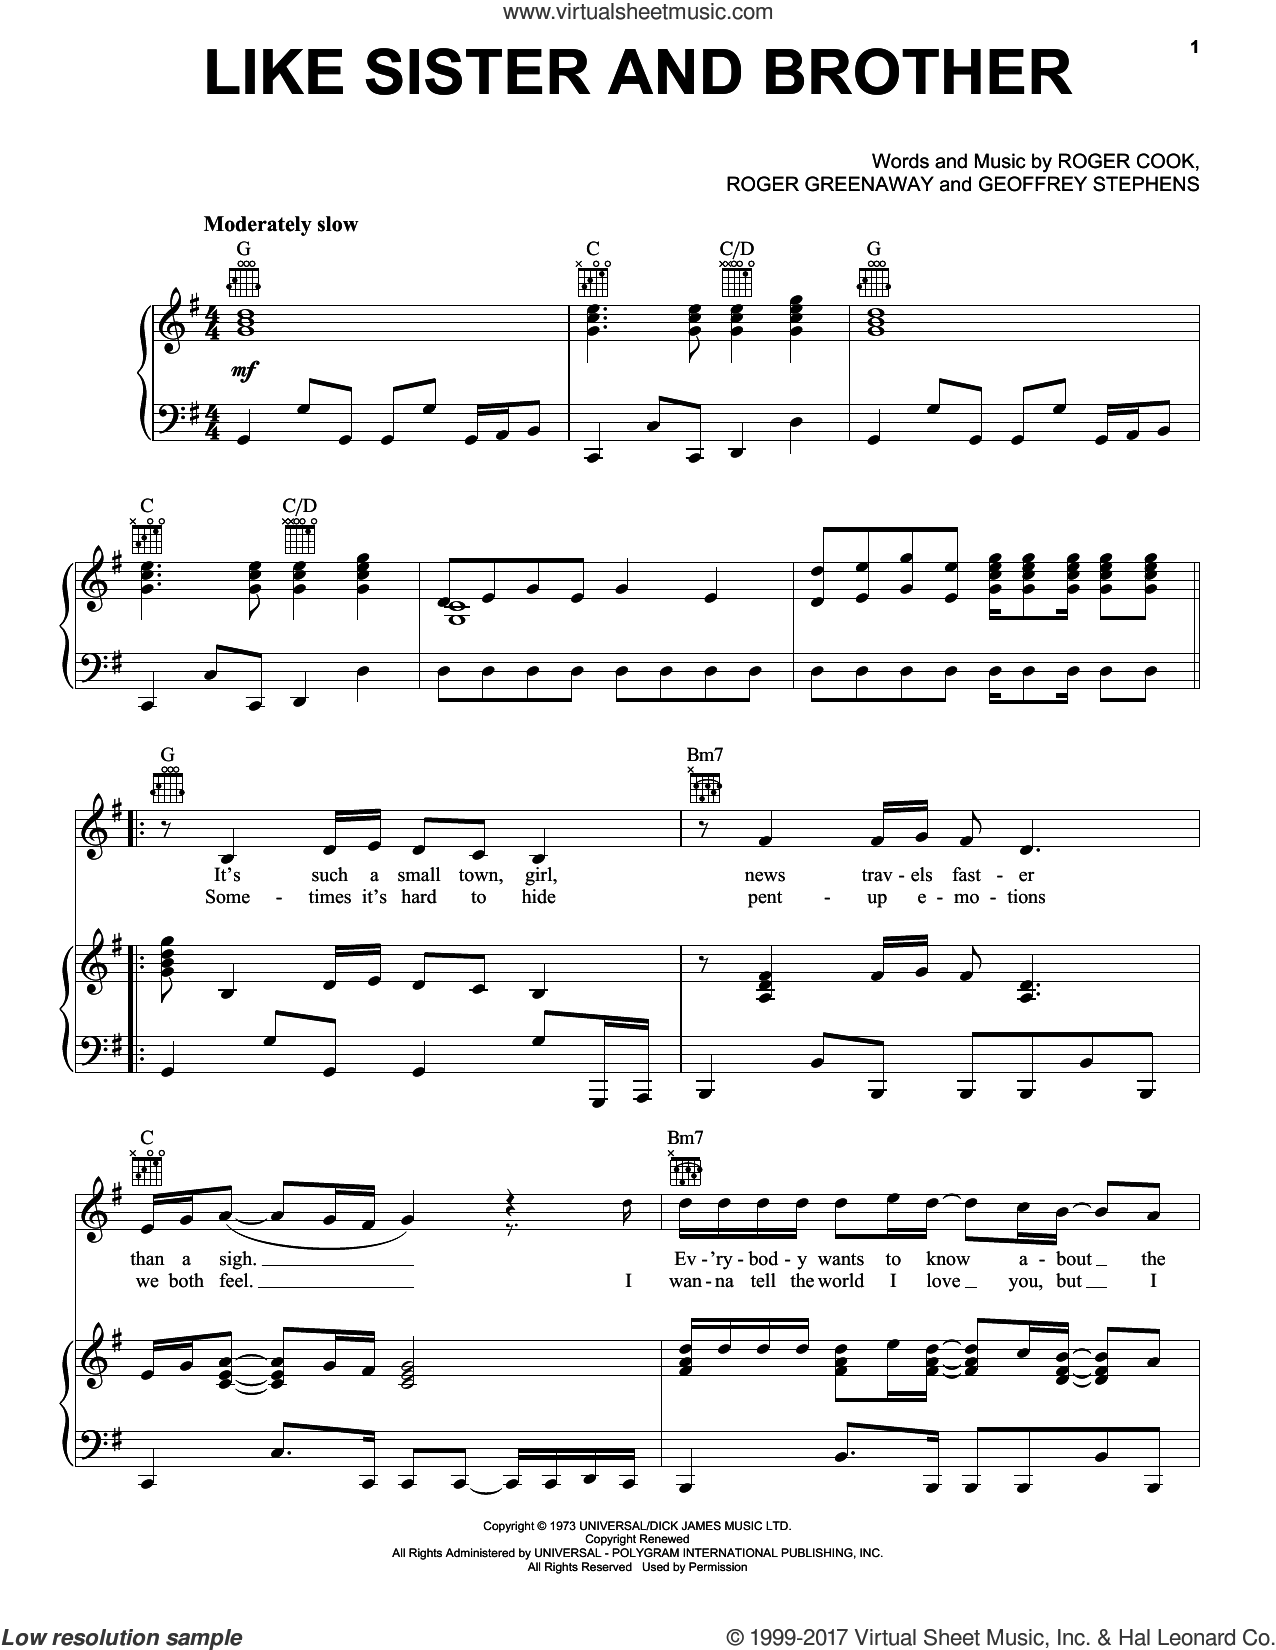 Like Sister and Brother sheet music for voice, piano or guitar by The Drifters, Geoff Stephens, Roger Cook and Roger Greenaway, intermediate skill level